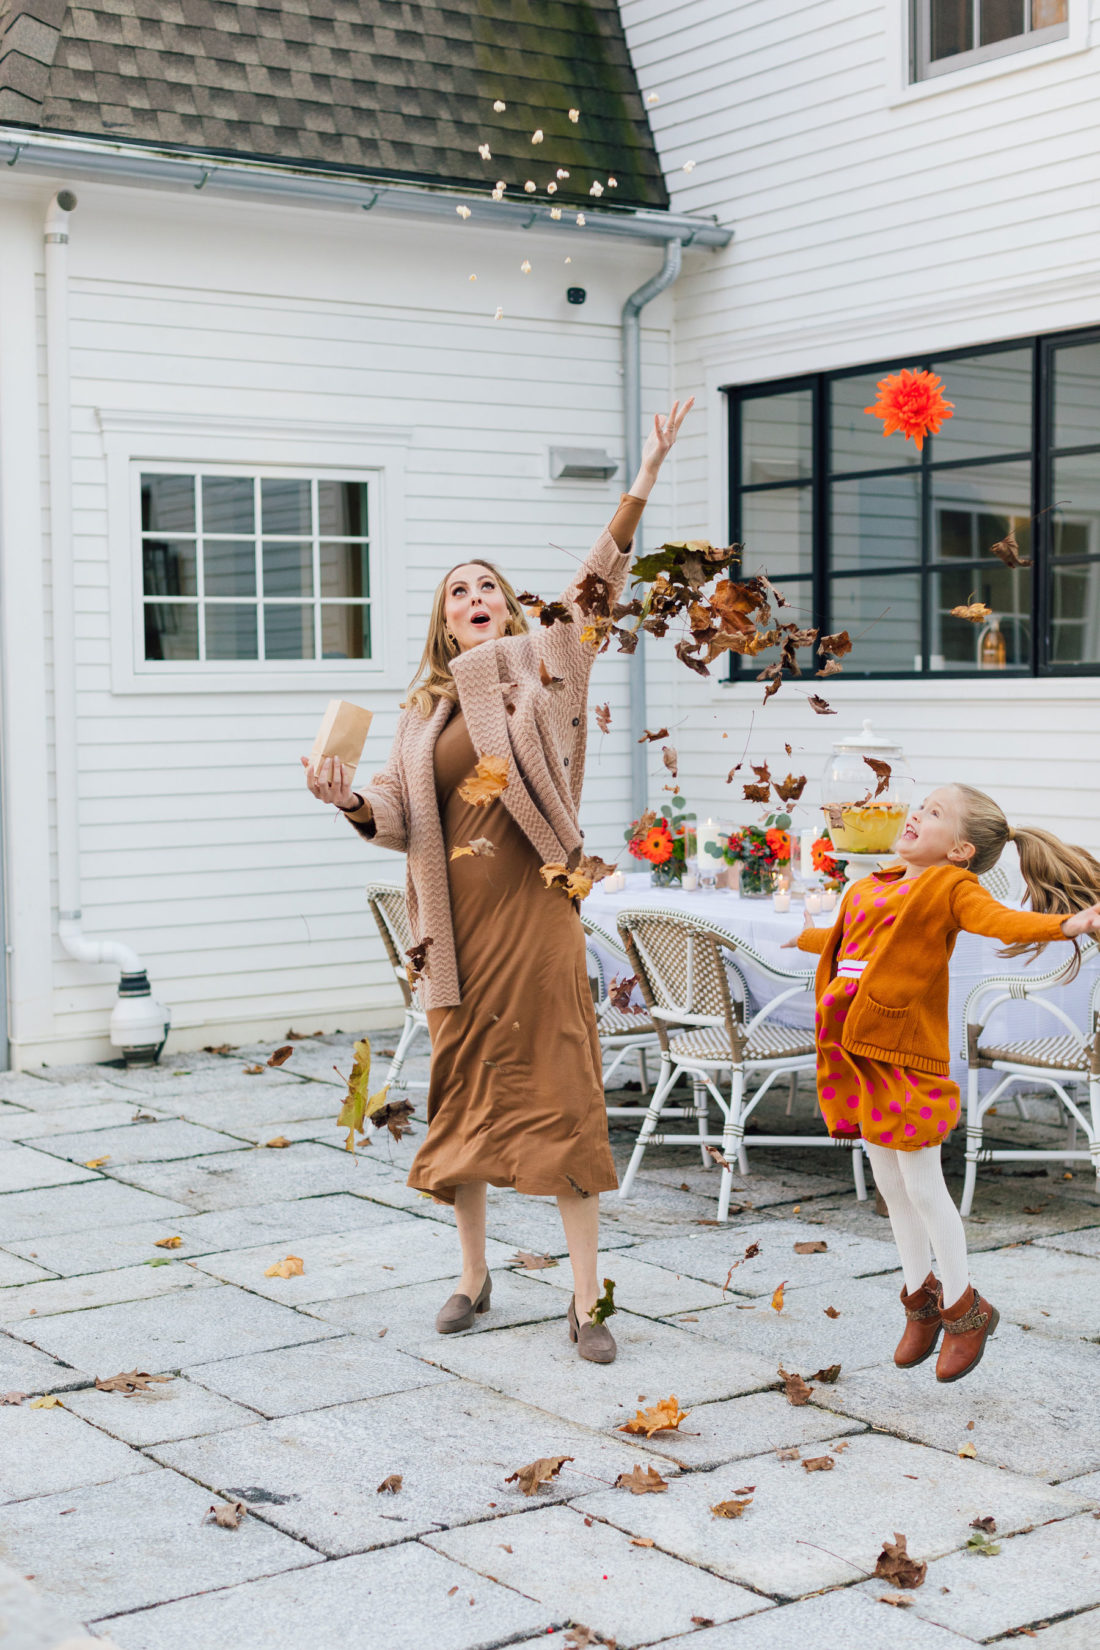 Eva Amurri and daughter Marlowe throw a pile of leaves in the air before an outdoor movie night on the back patio of her Connecticut home